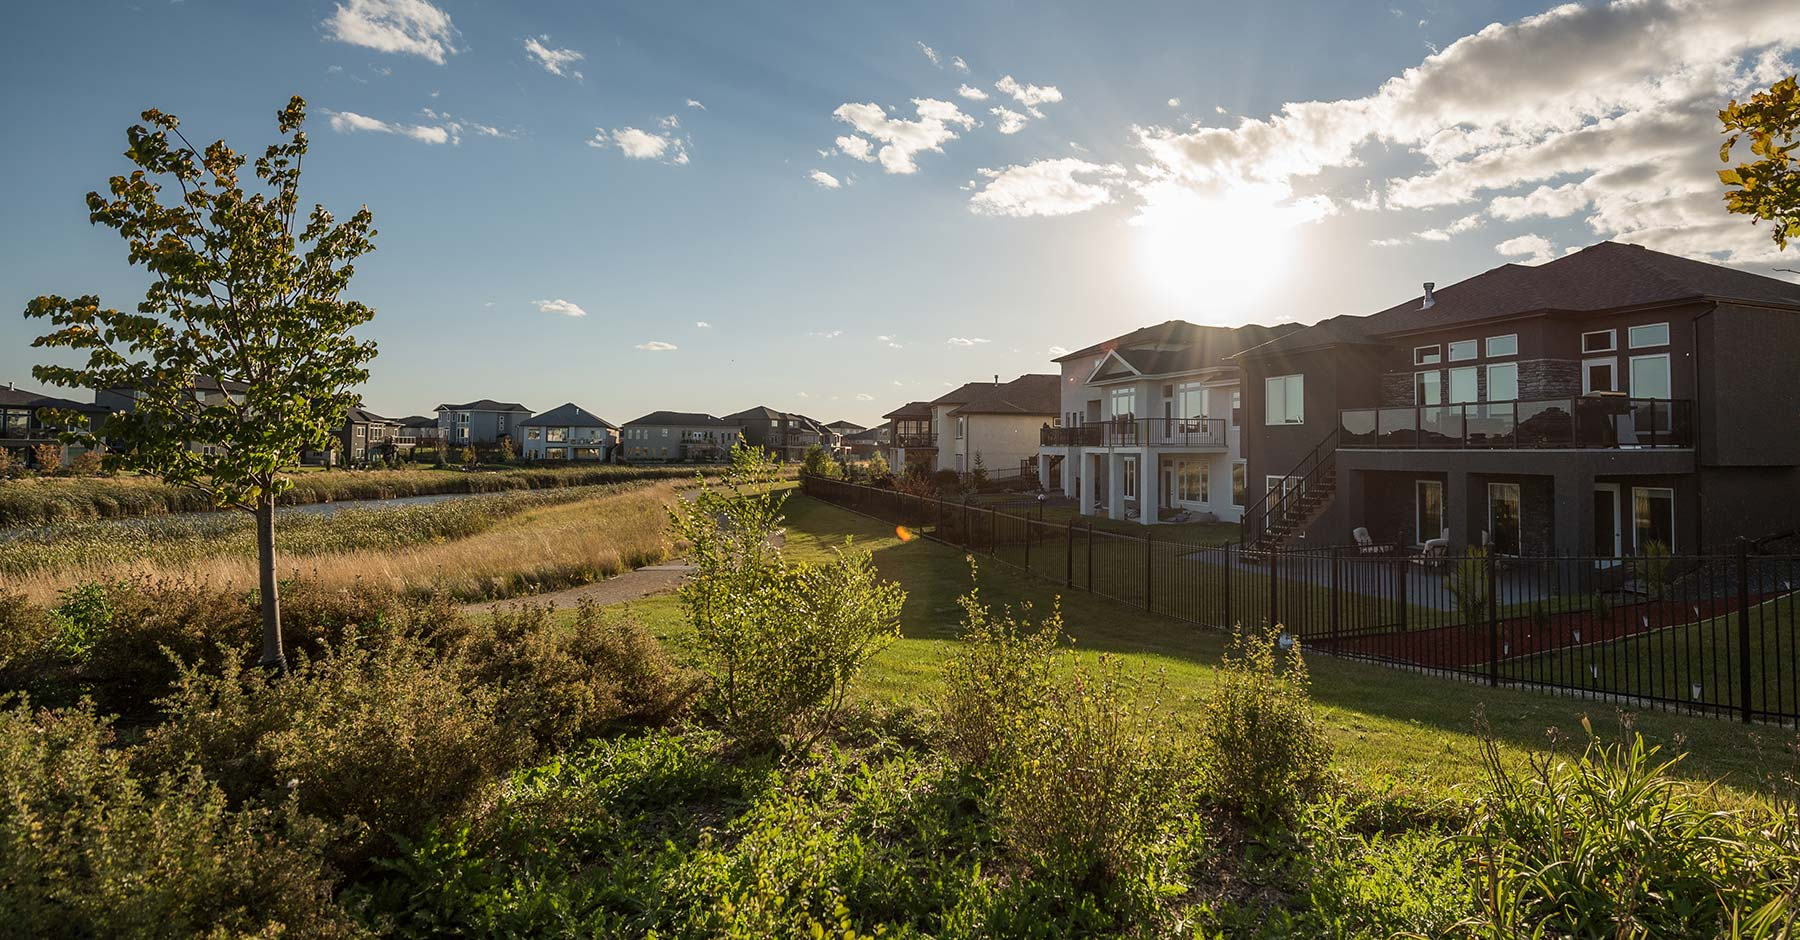 Homes backing onto trails and wetlands